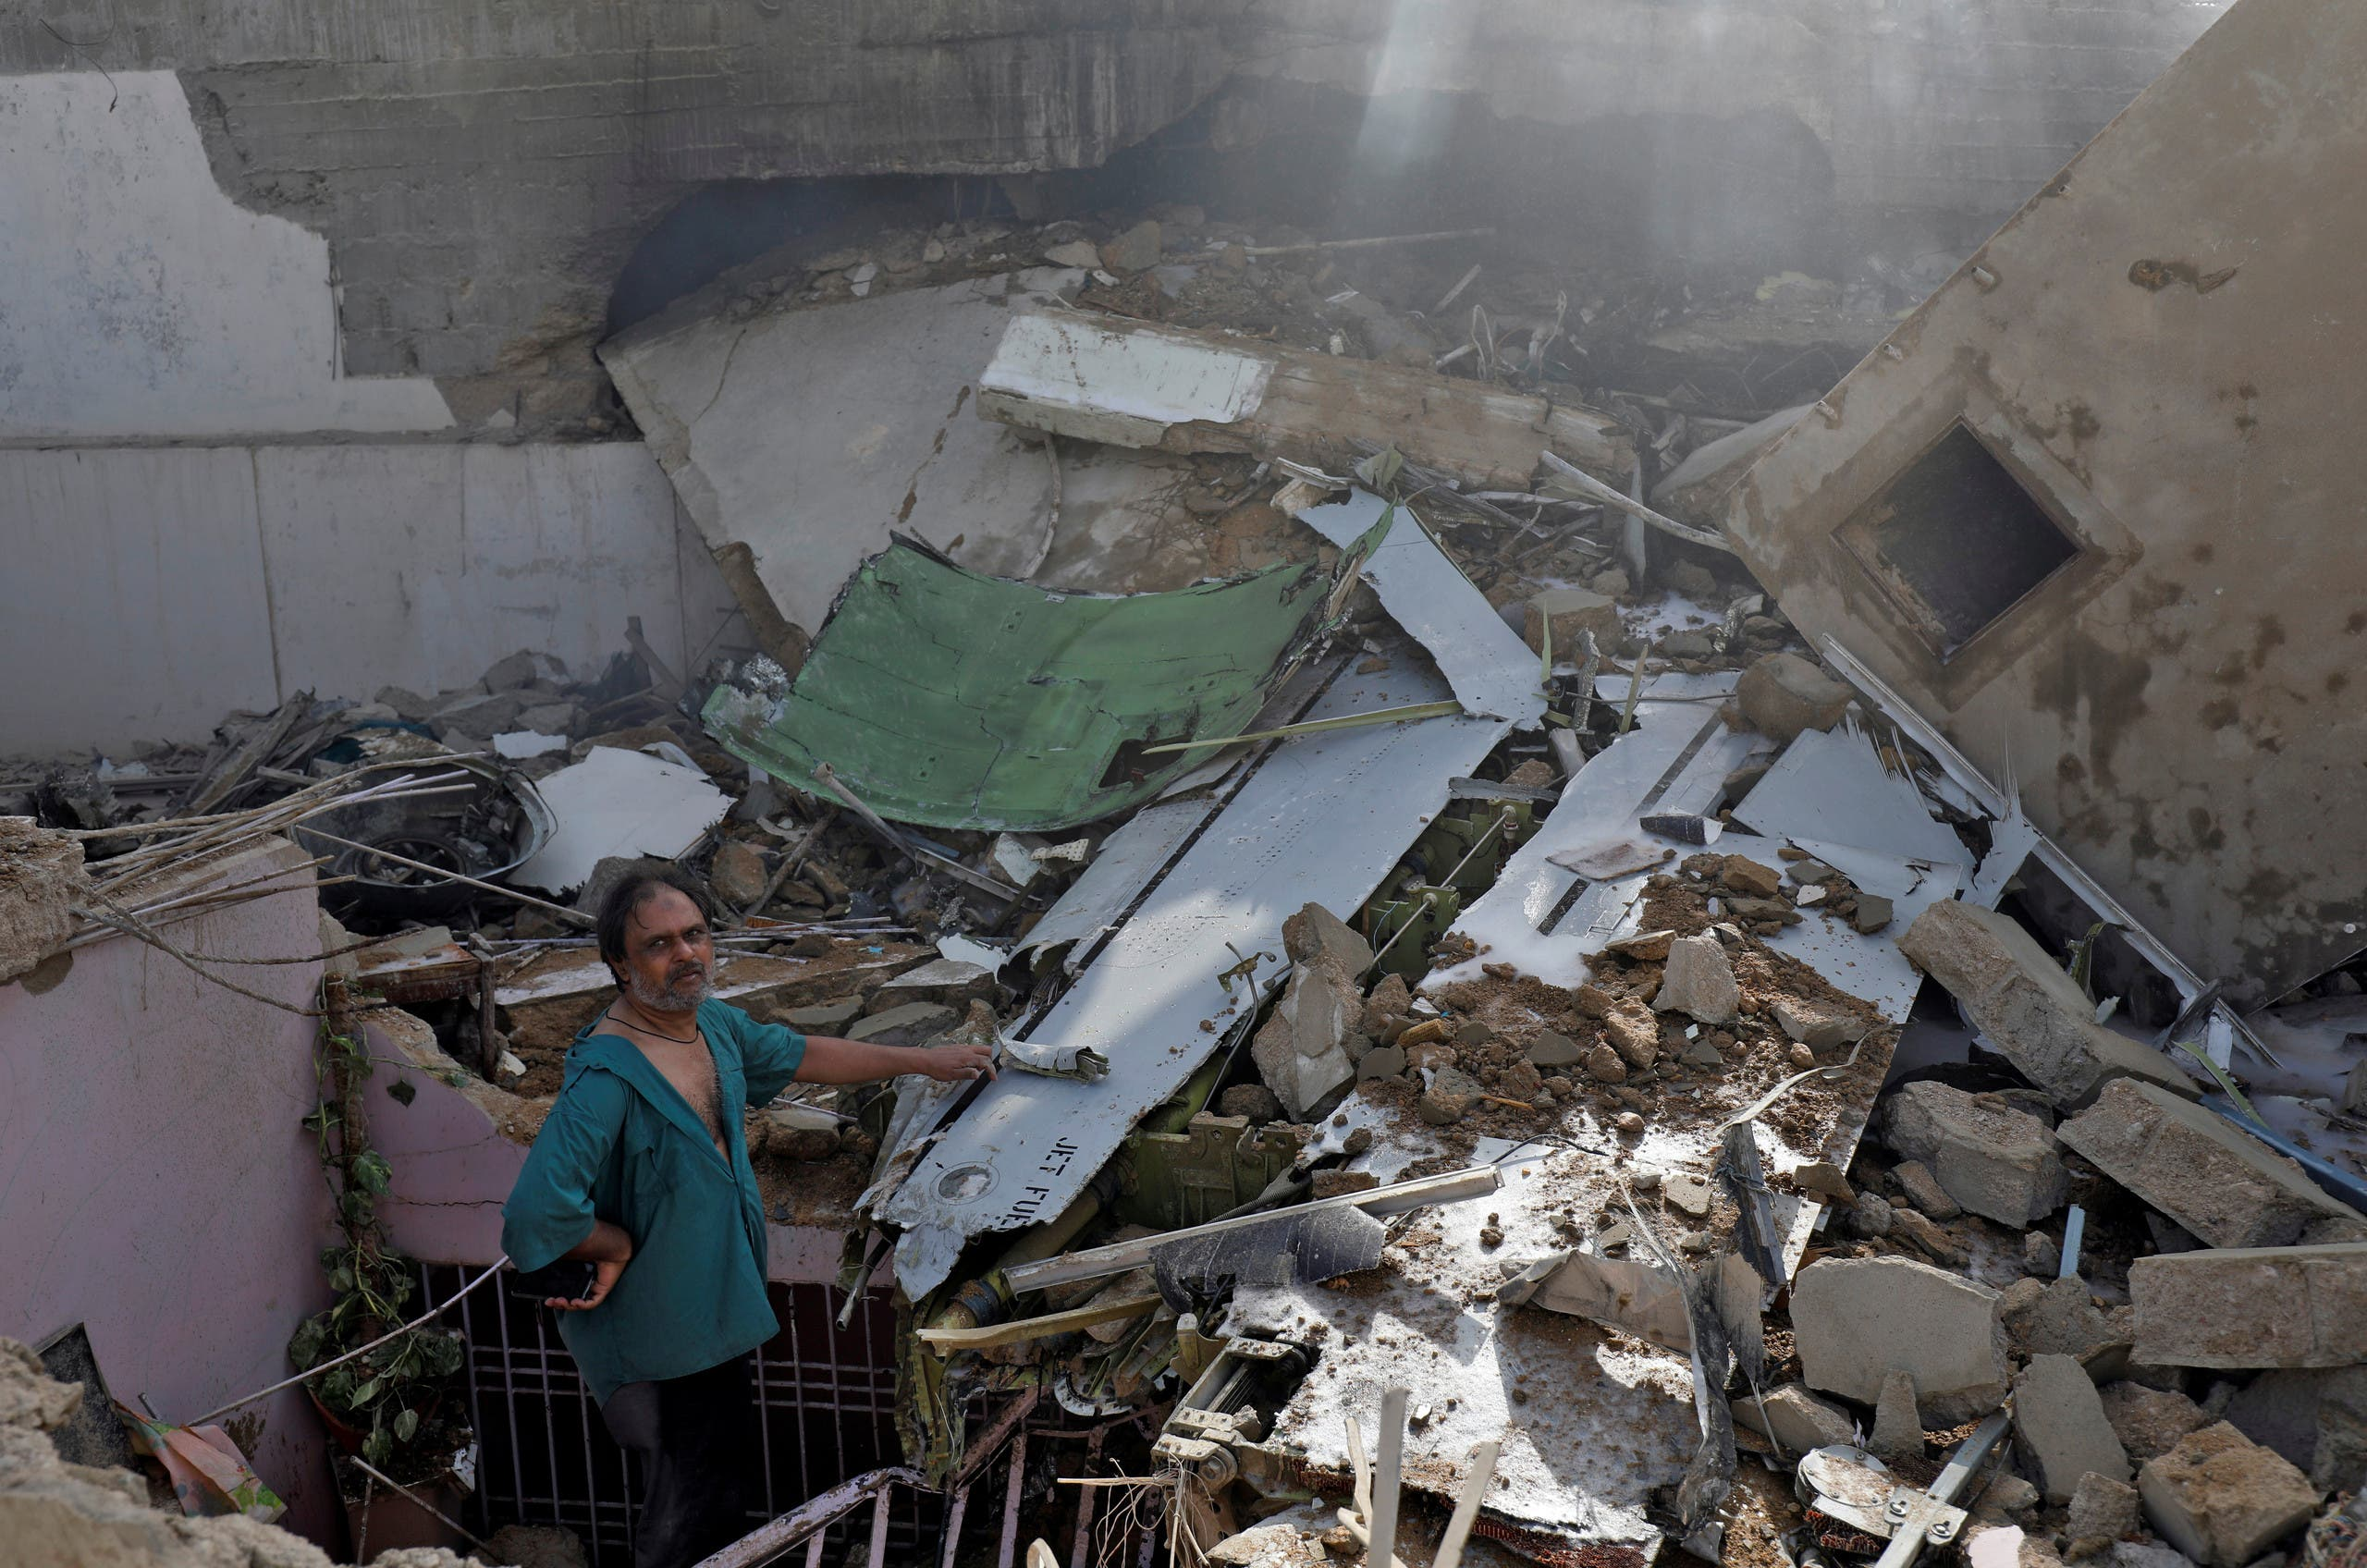 A man stands on the debris of a house at the site of a passenger plane crash in a residential area near an airport in Karachi, Pakistan May 22, 2020. (File photo: Reuters)